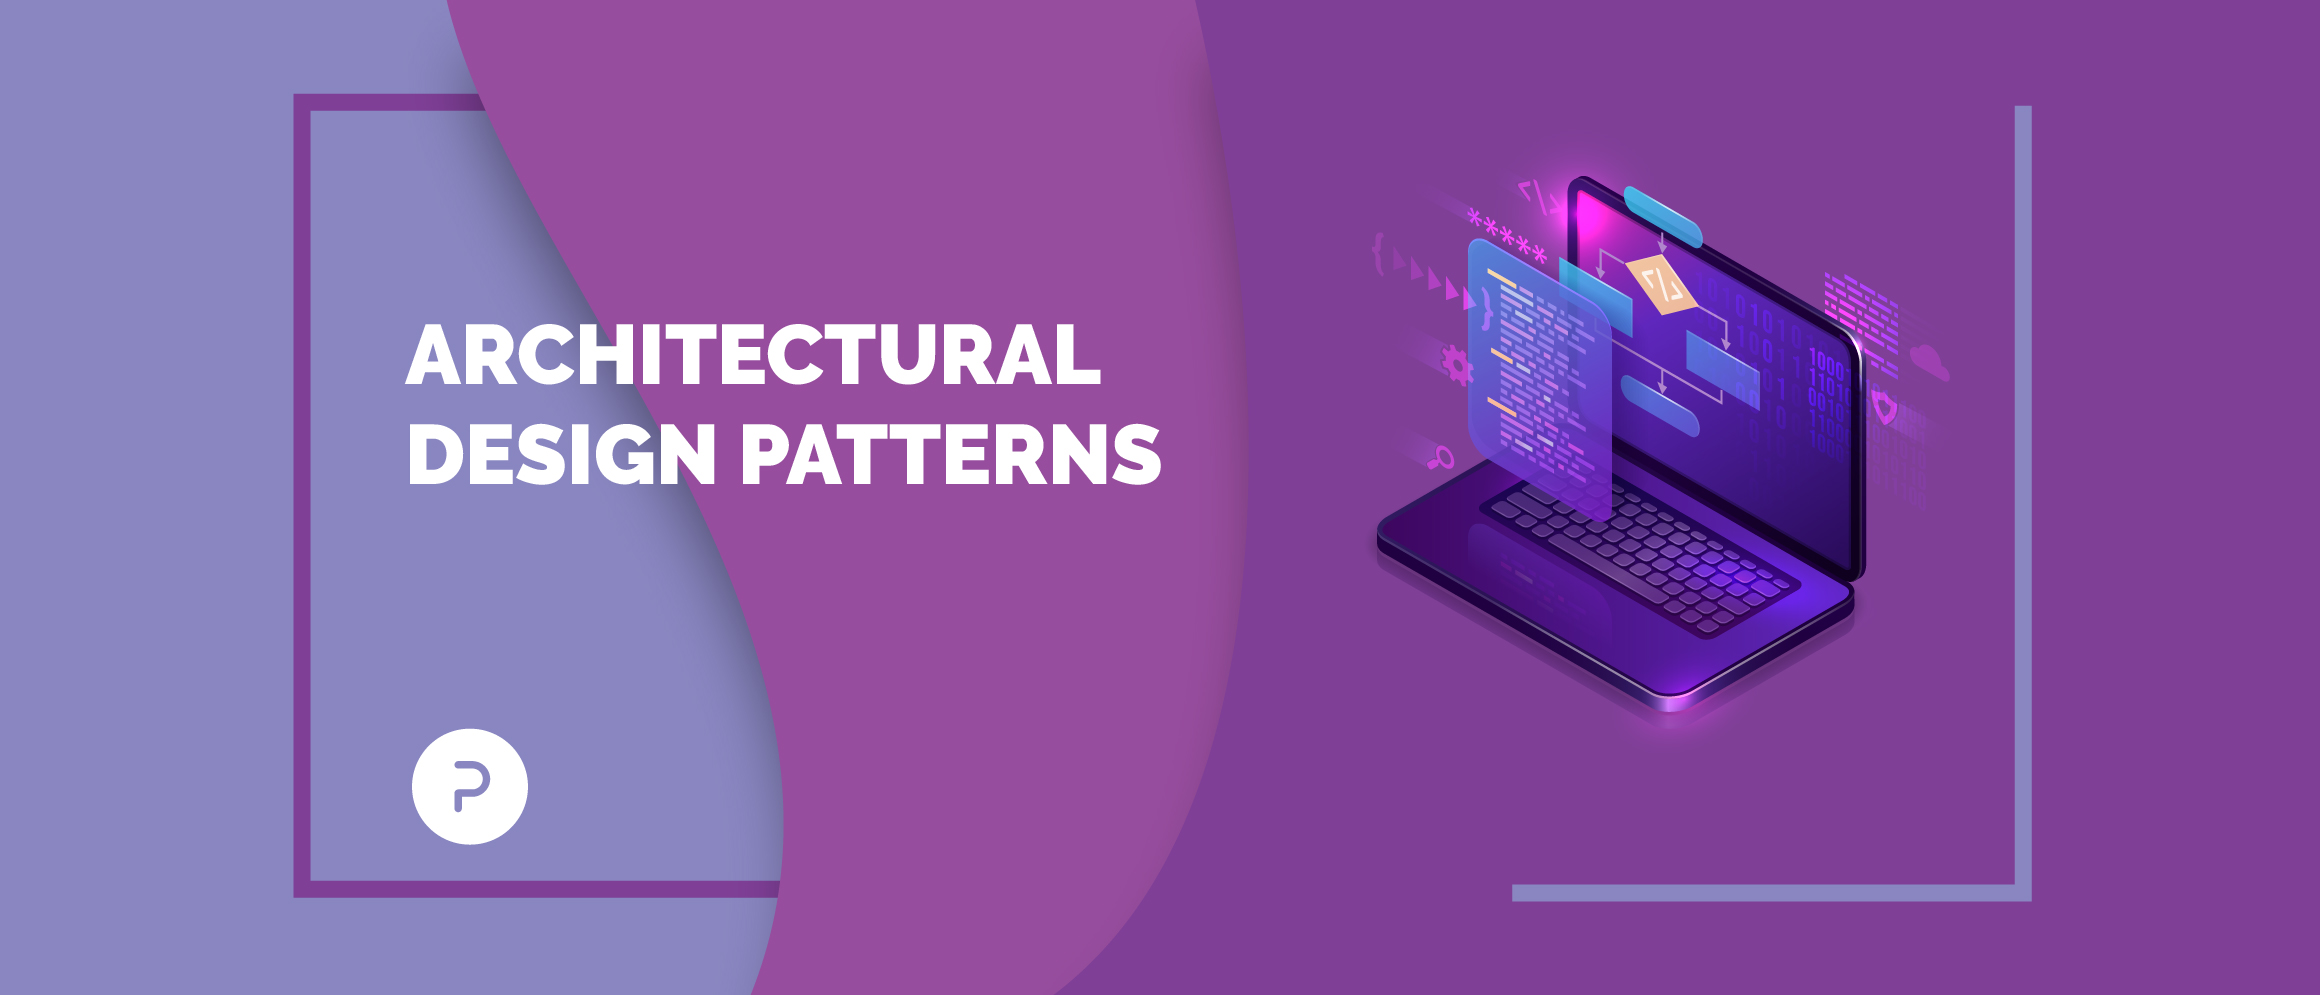 Mobile App Development: Why Architectural Design Patterns Matter And Which To Choose